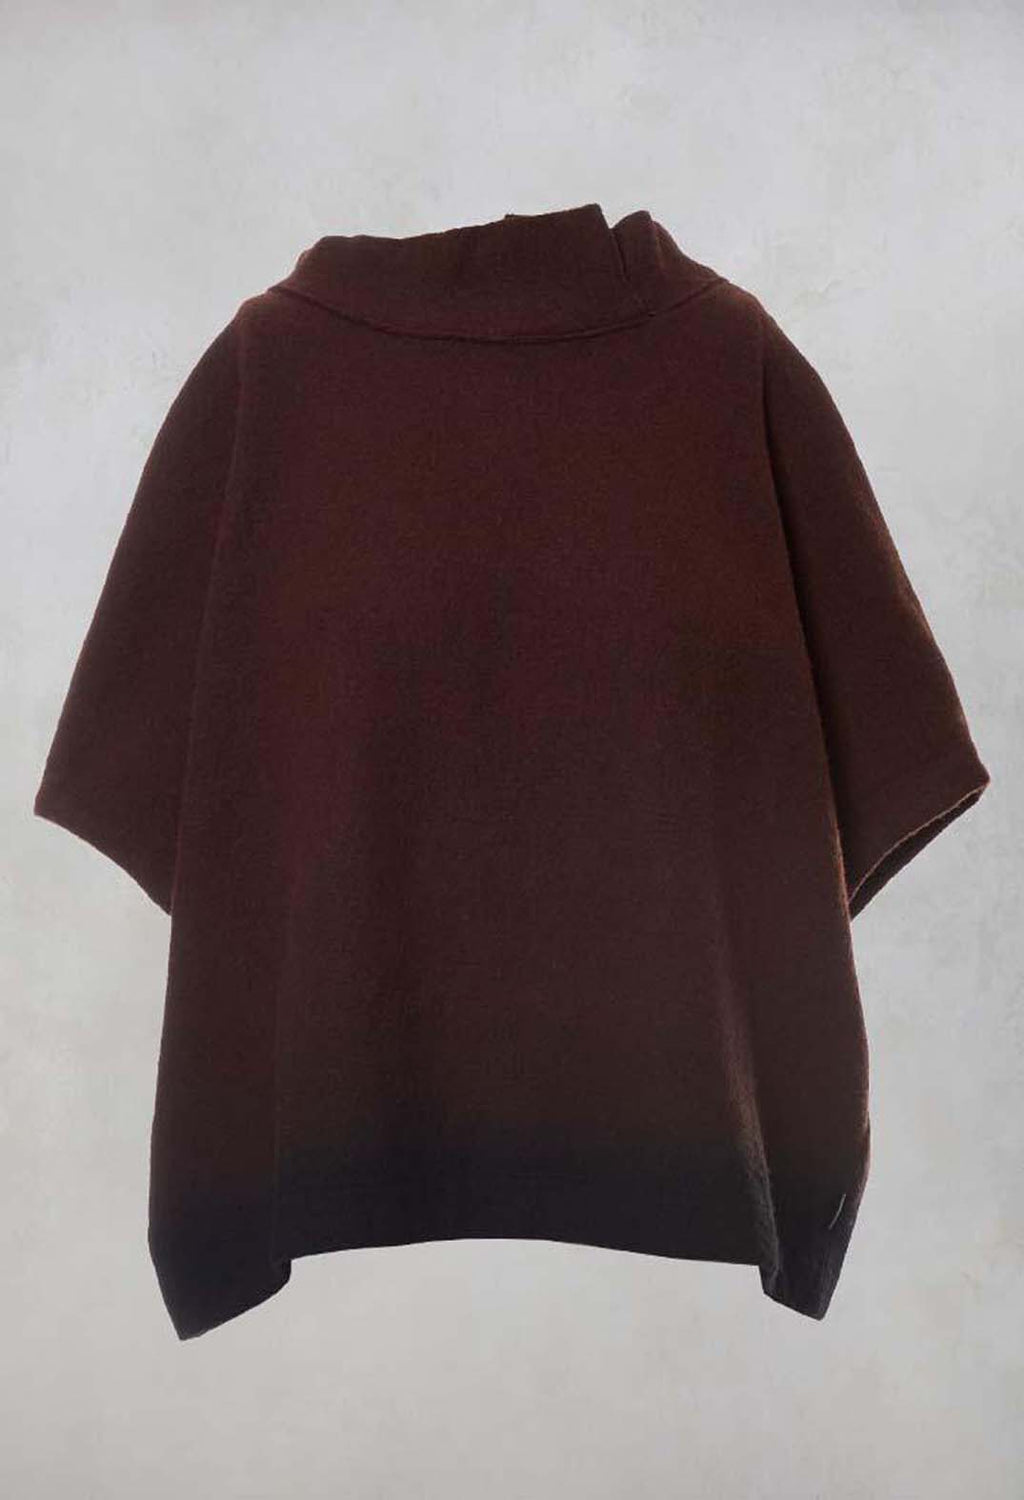 Boxy Top in Cognac / Black